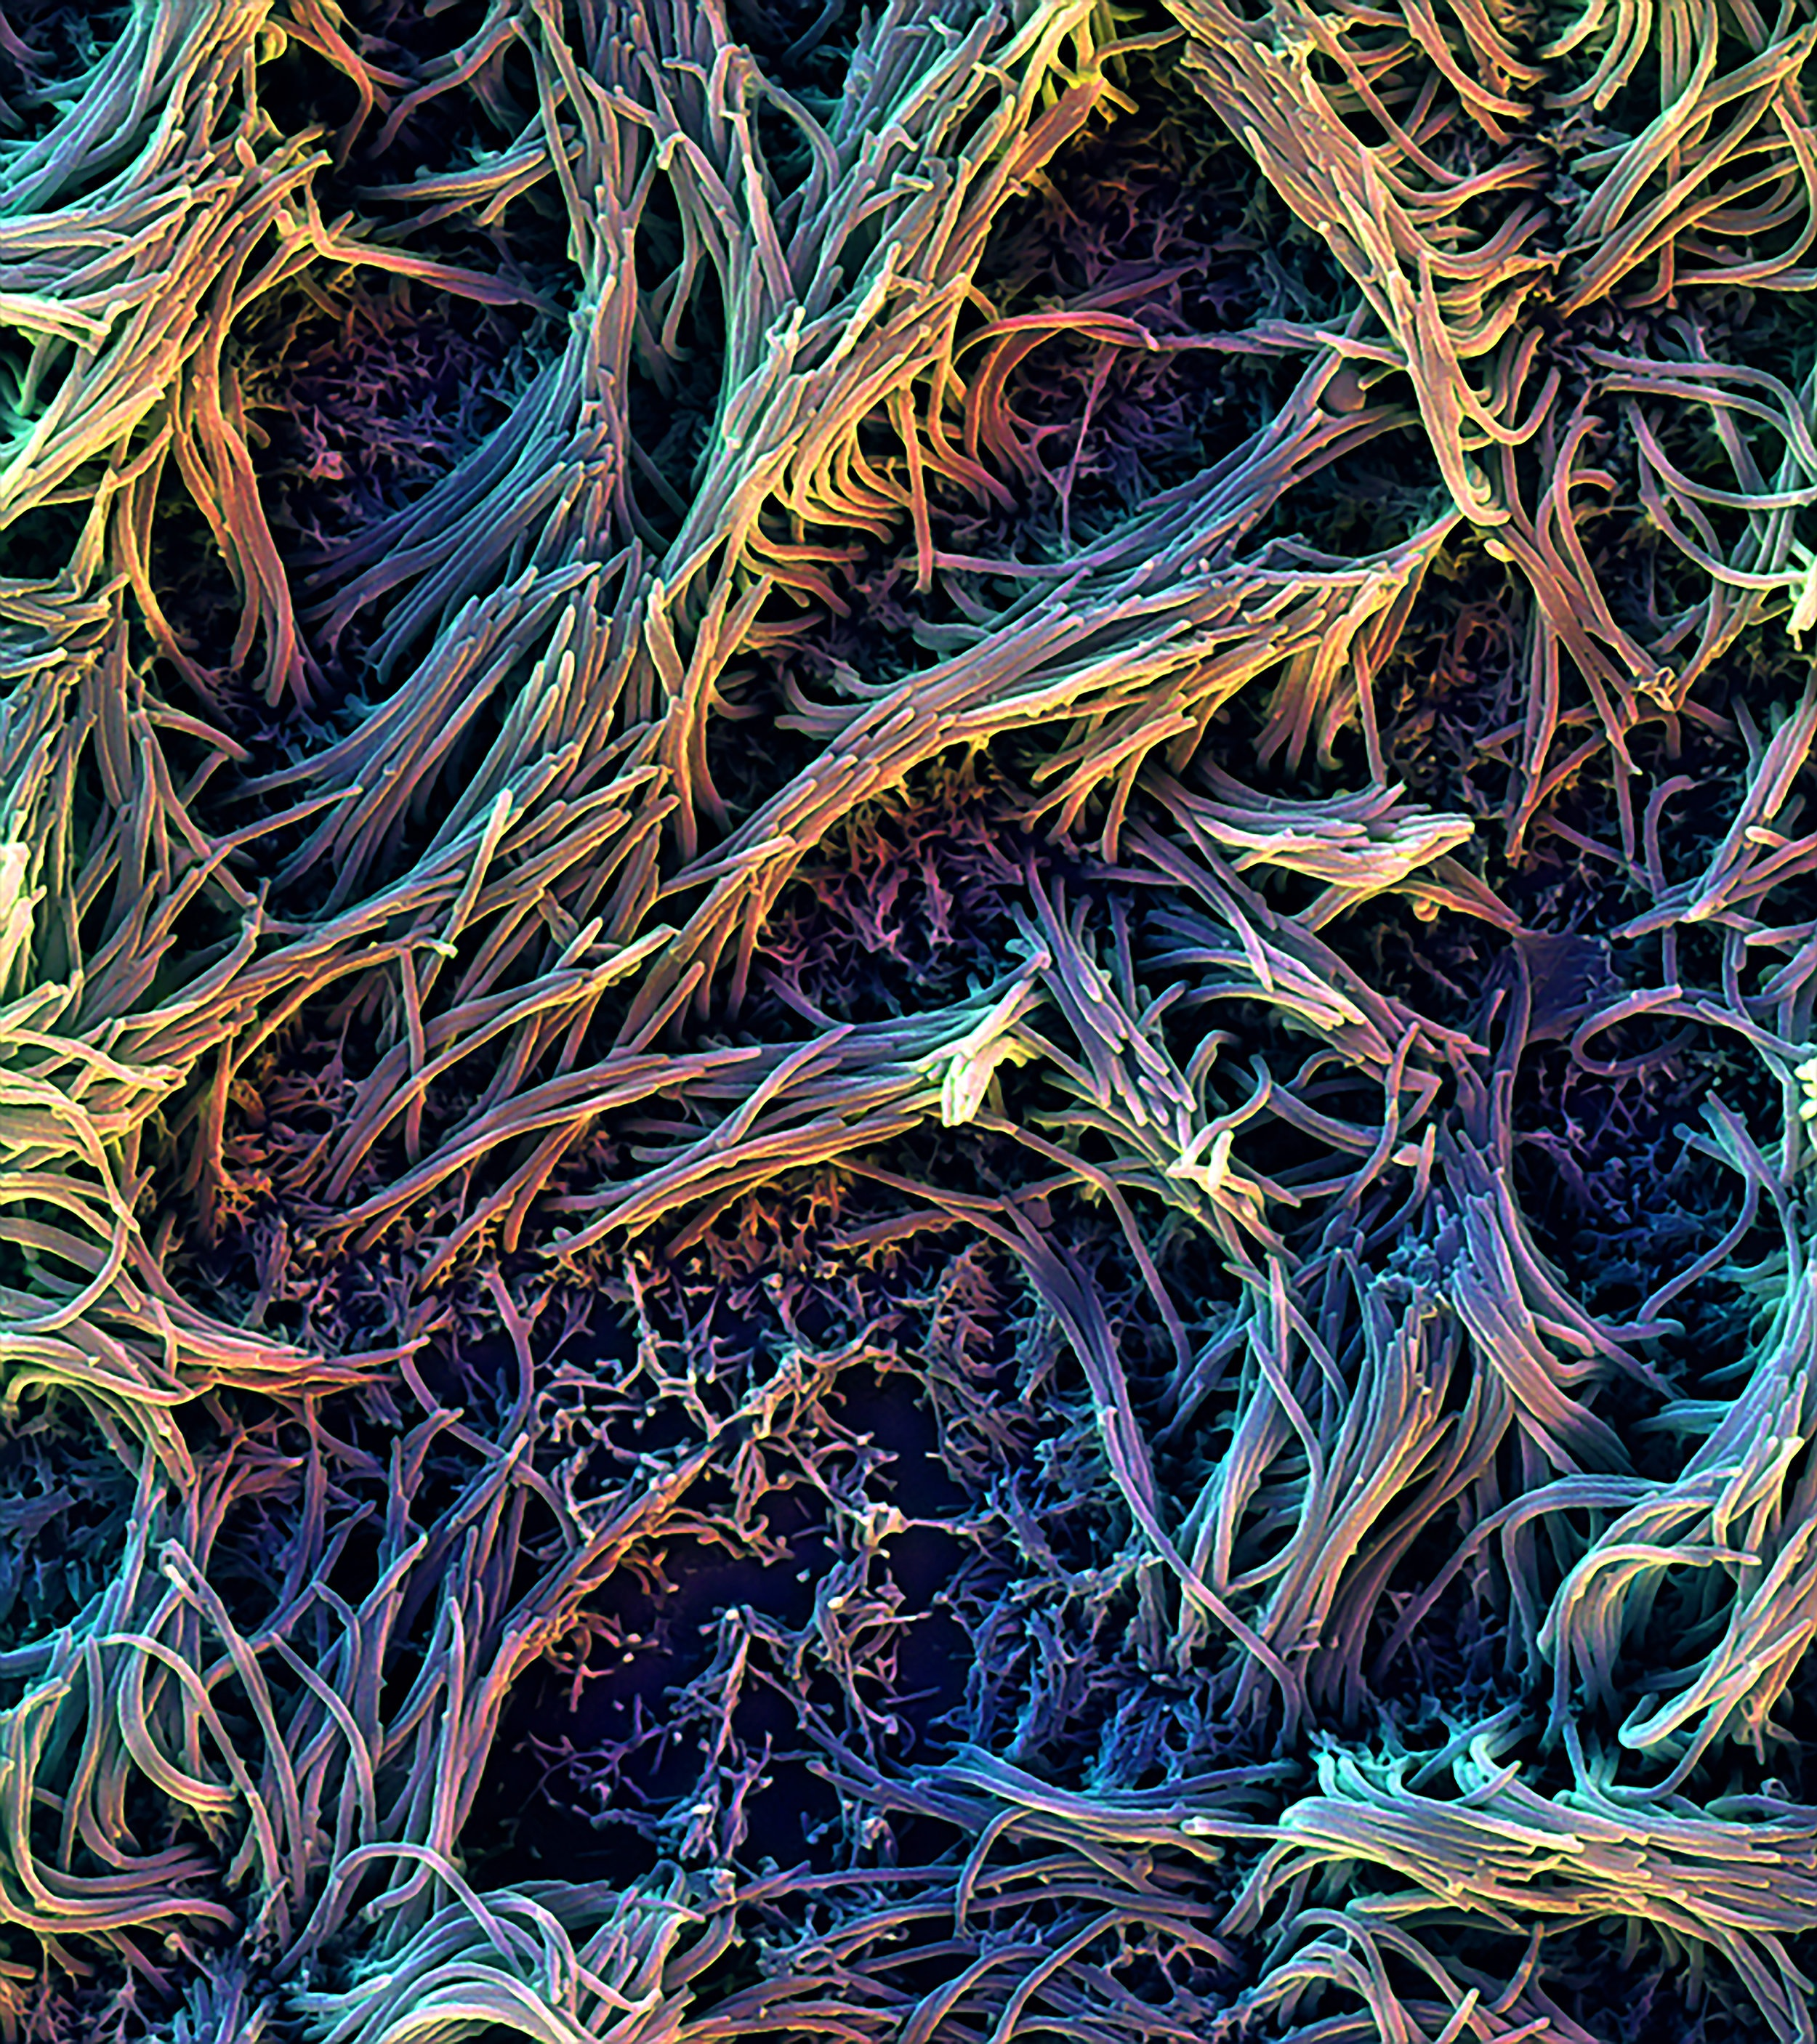 SEM image of ciliated cells in the Airway Lung-Chip